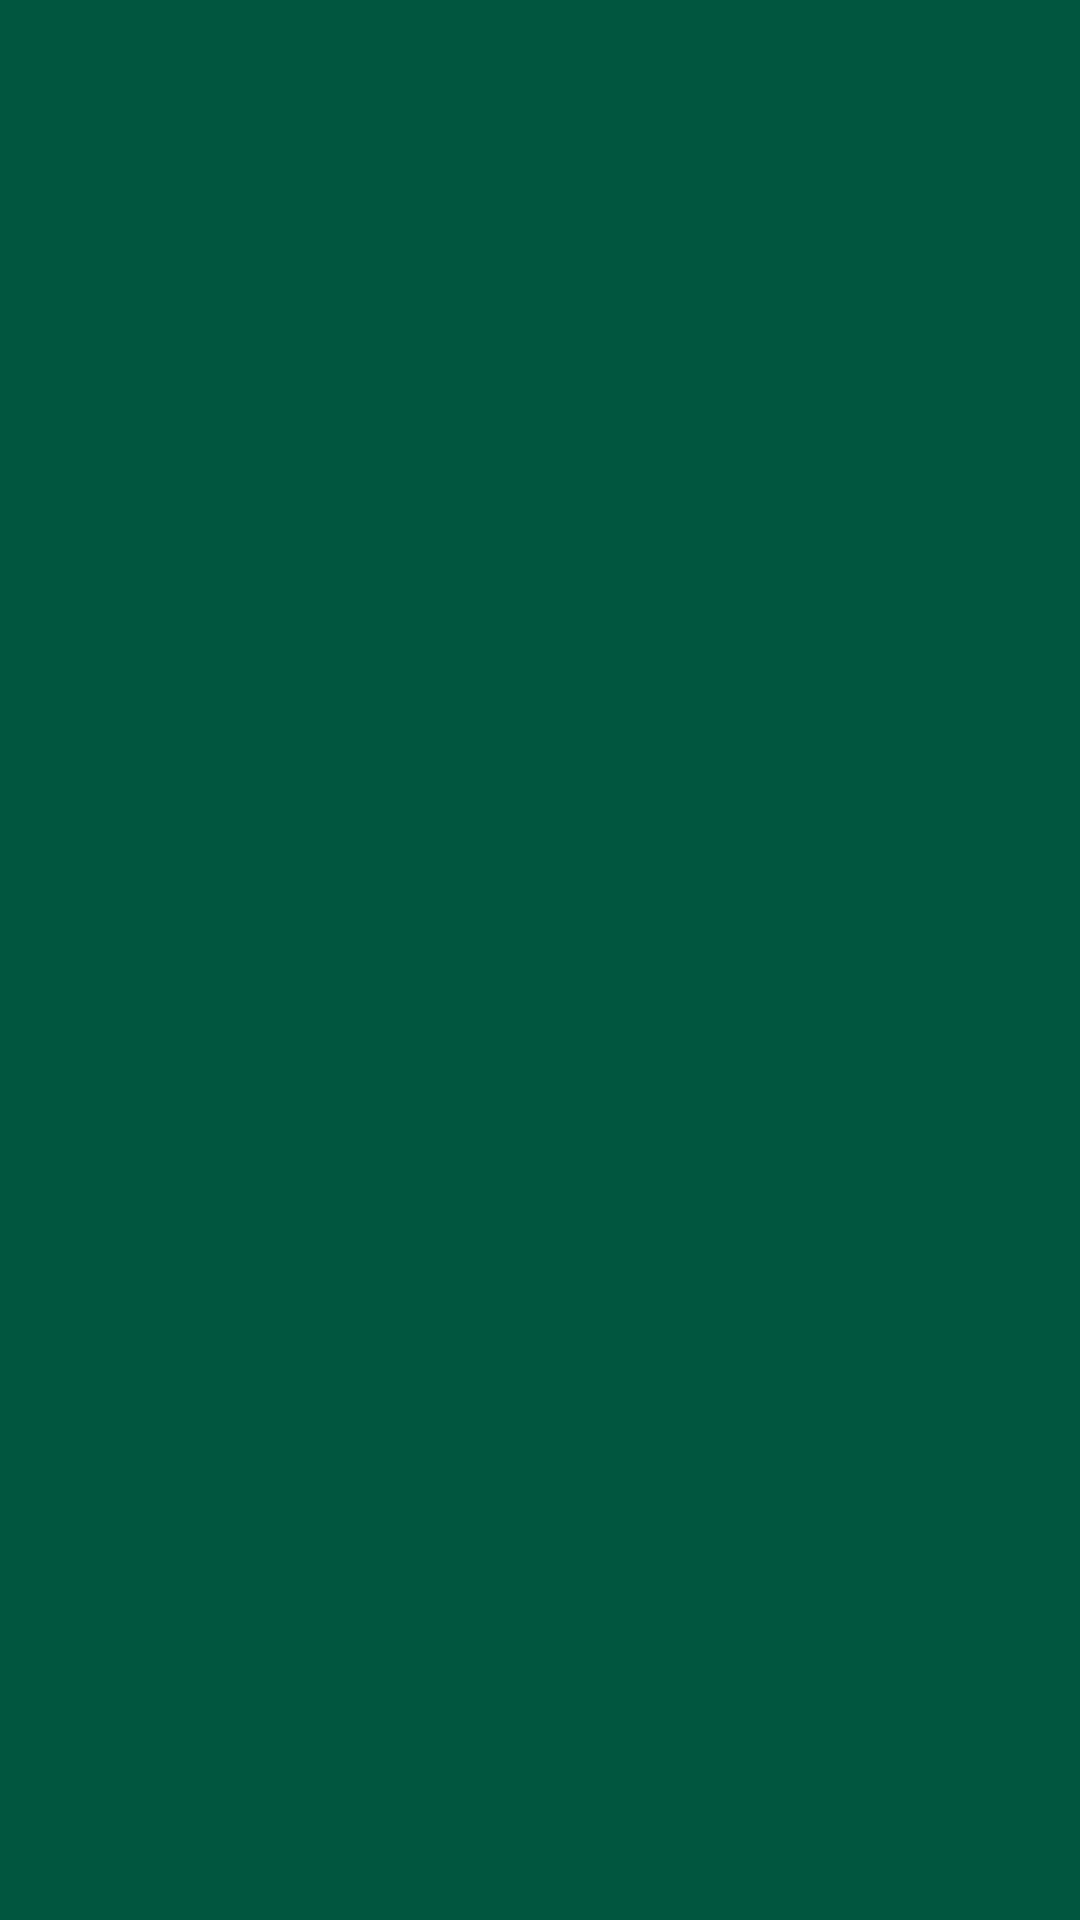 1080x1920 Castleton Green Solid Color Background